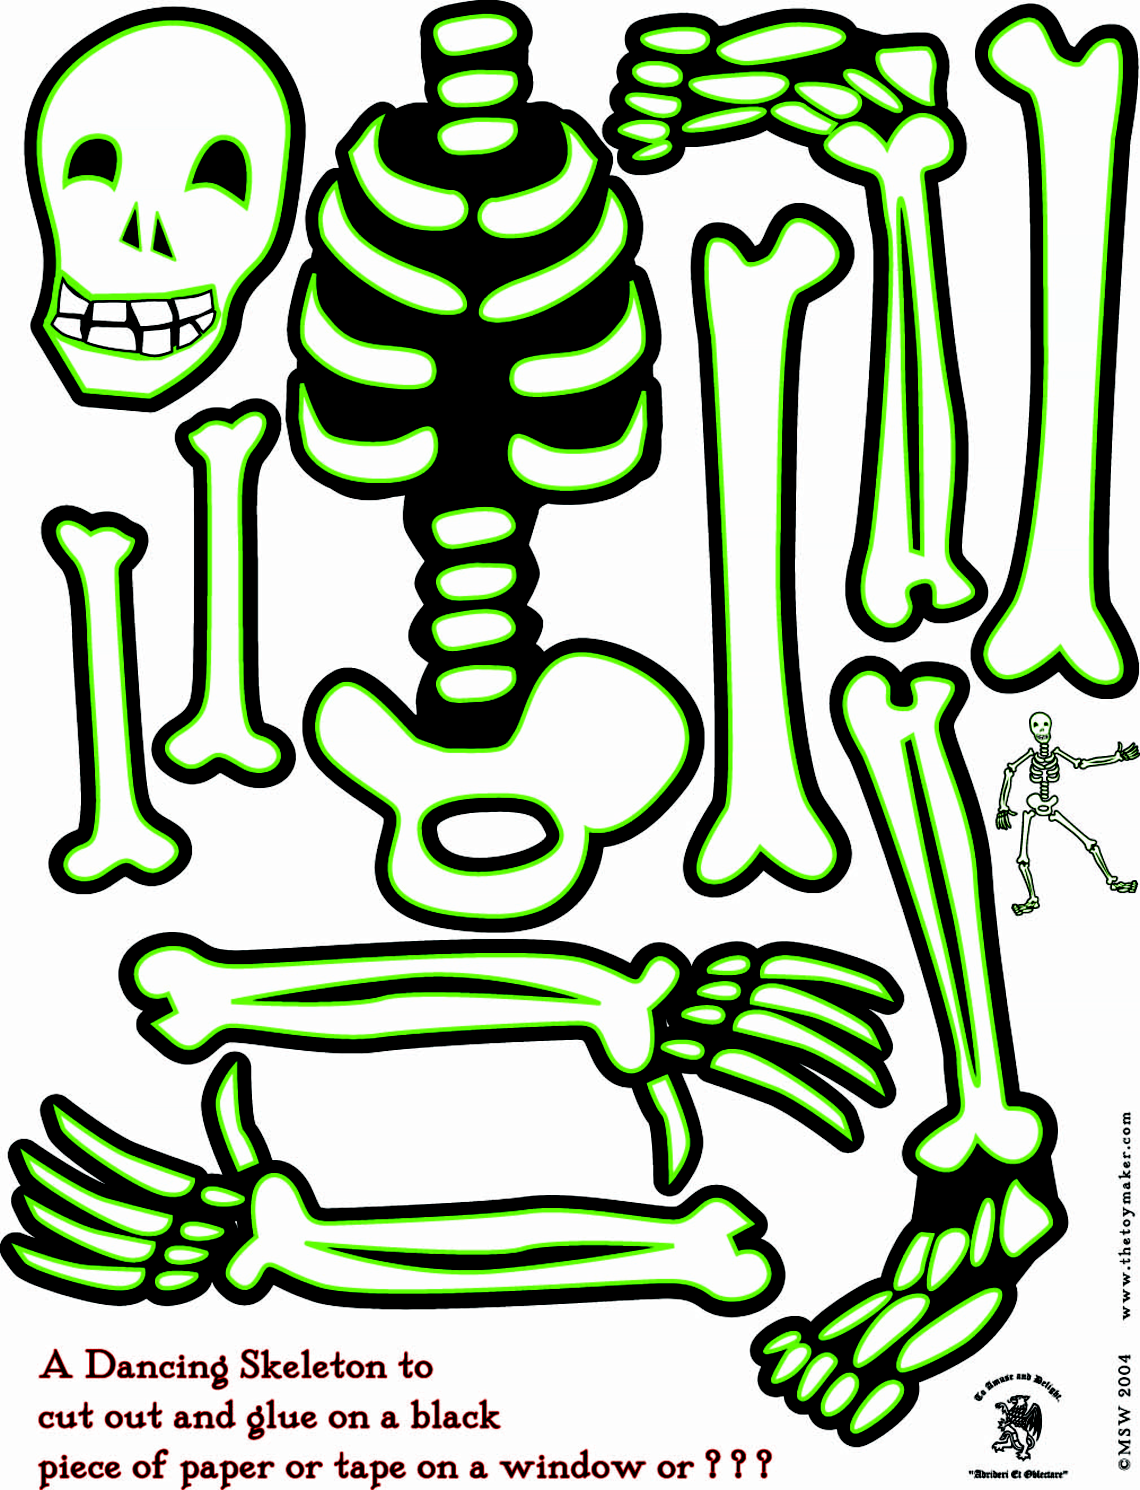 graphic regarding Skeleton Cut Out Printable referred to as Huge Skeleton Minimize Out Dancing Skeleton in the direction of _ lower out and